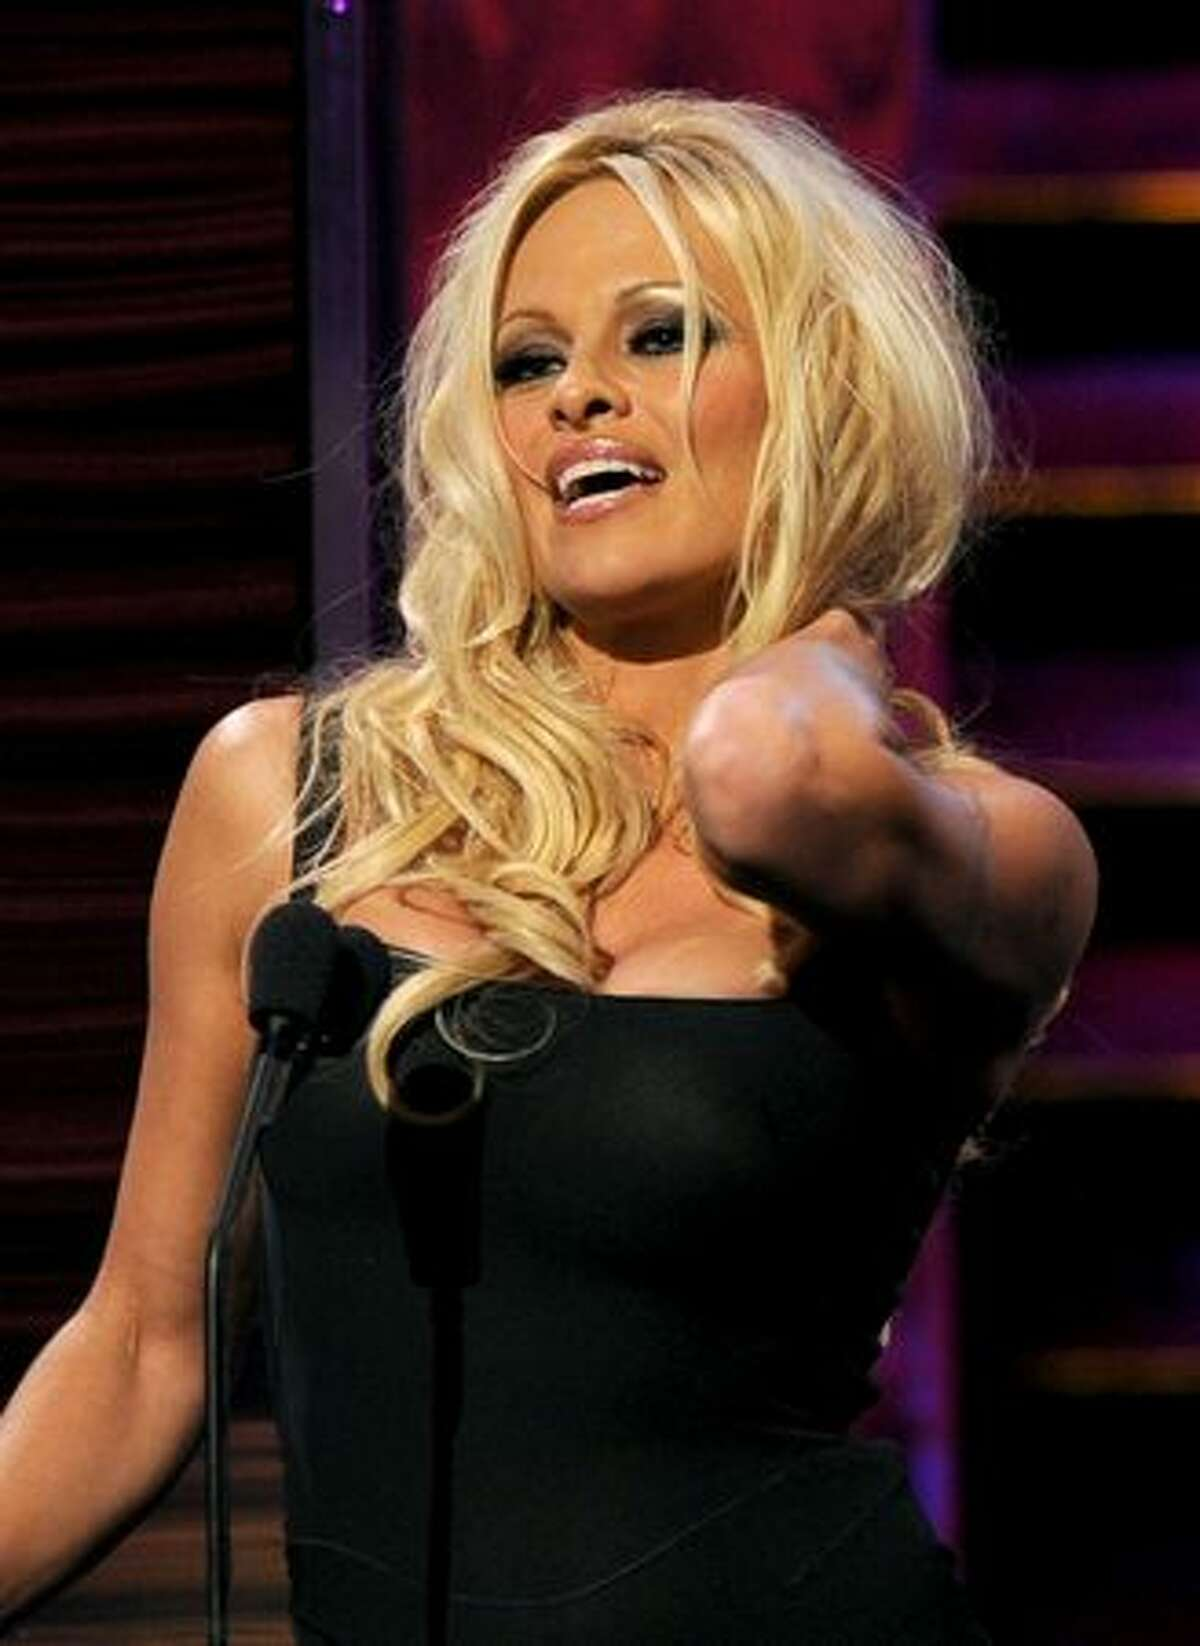 Actress Pamela Anderson speaks onstage at the Comedy Central Roast of David Hasselhoff held at Sony Pictures Studios in Culver City, California.